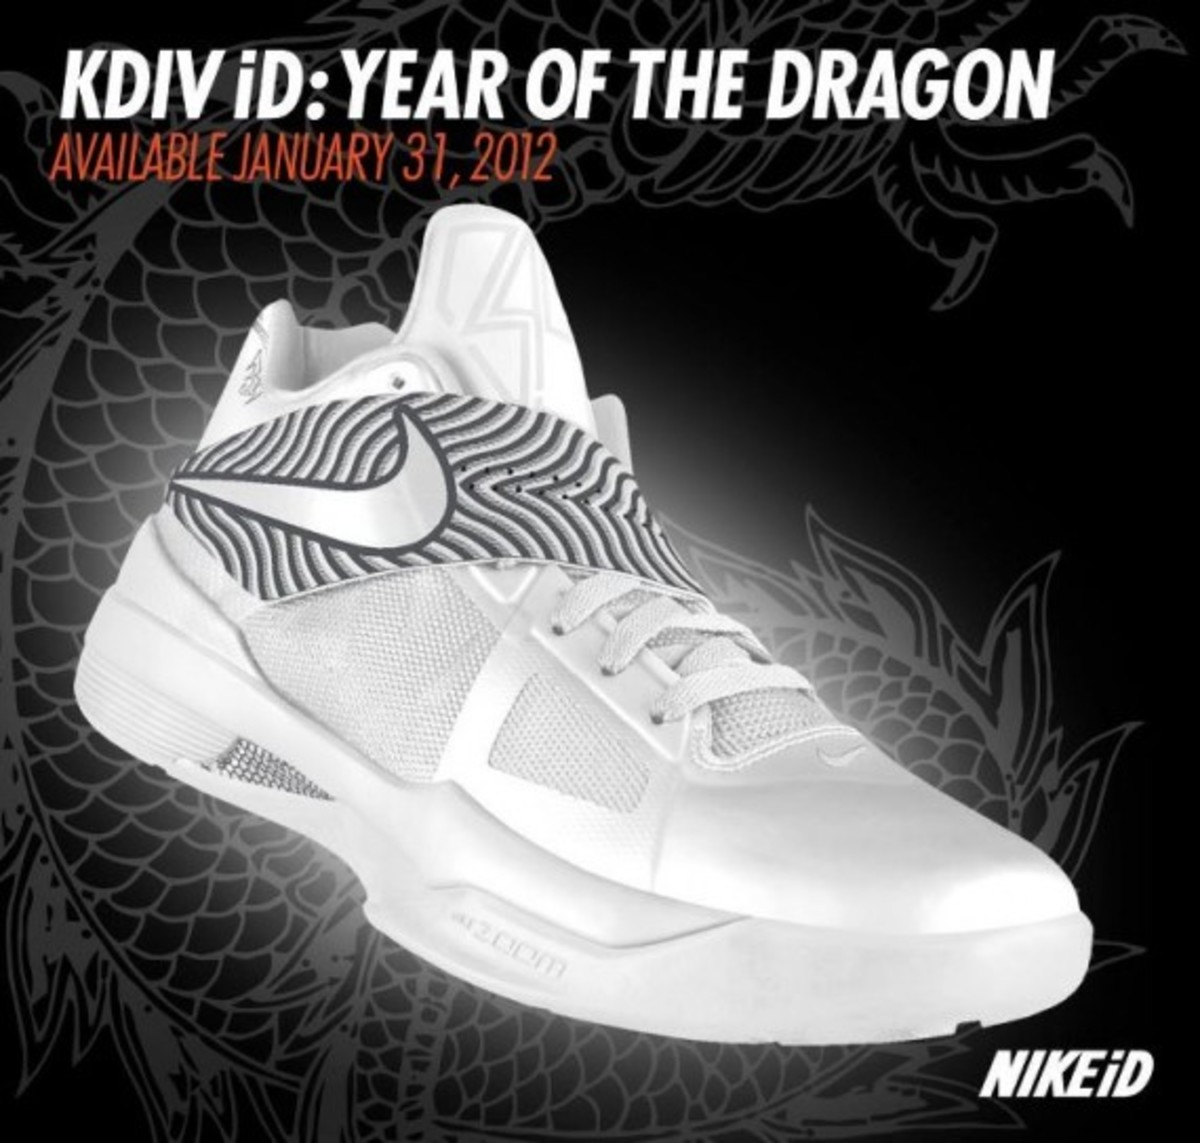 nikeid-zoom-kd-iv-dragon-01